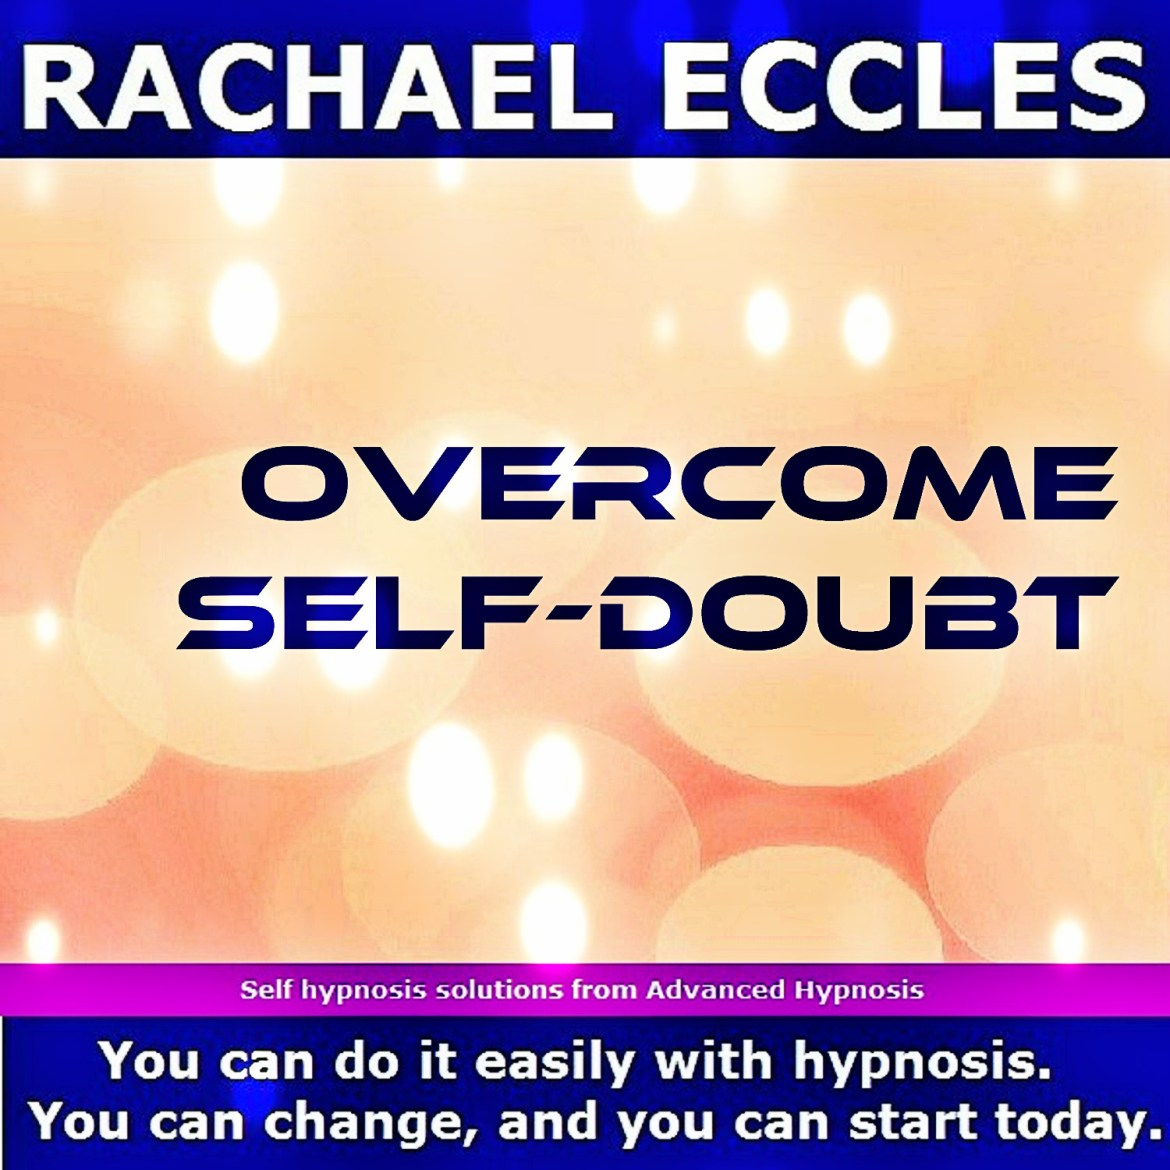 Overcome self doubt, become more sure of yourself, trust your own opinions  Self Hypnosis MP3 download 00278